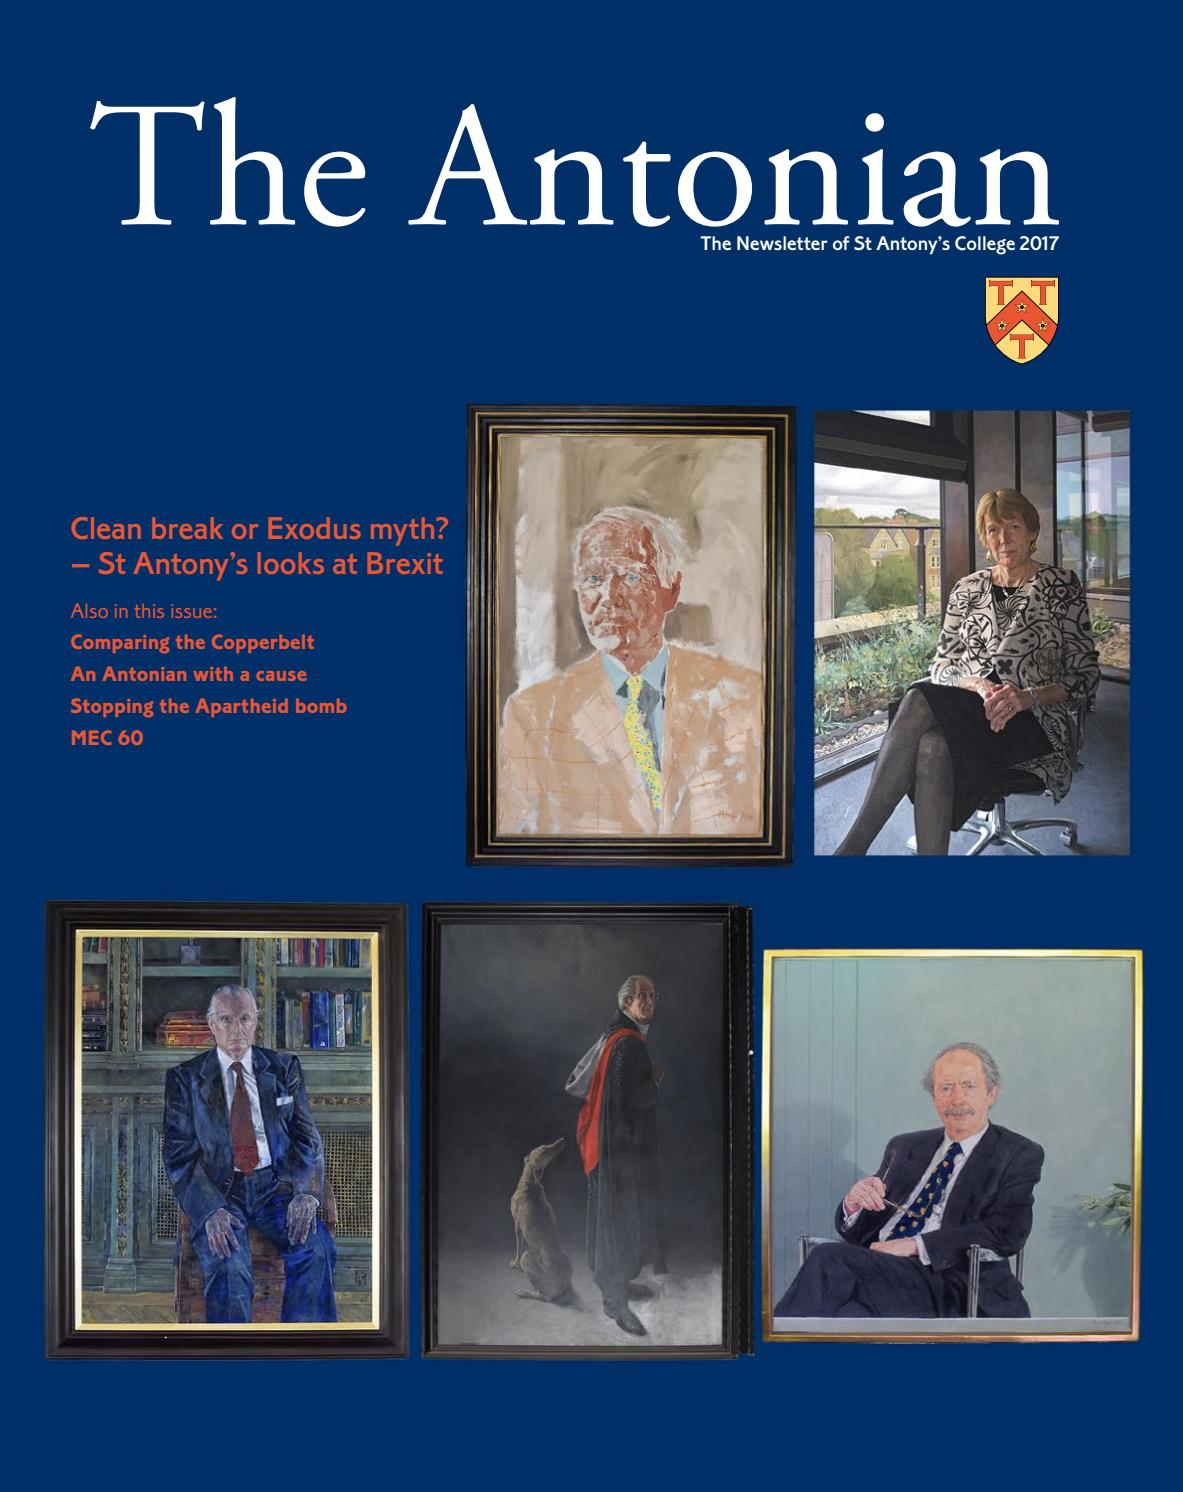 The Antonian Newsletter 2017 by St Antony s College - issuu 3f382a3a7a0a